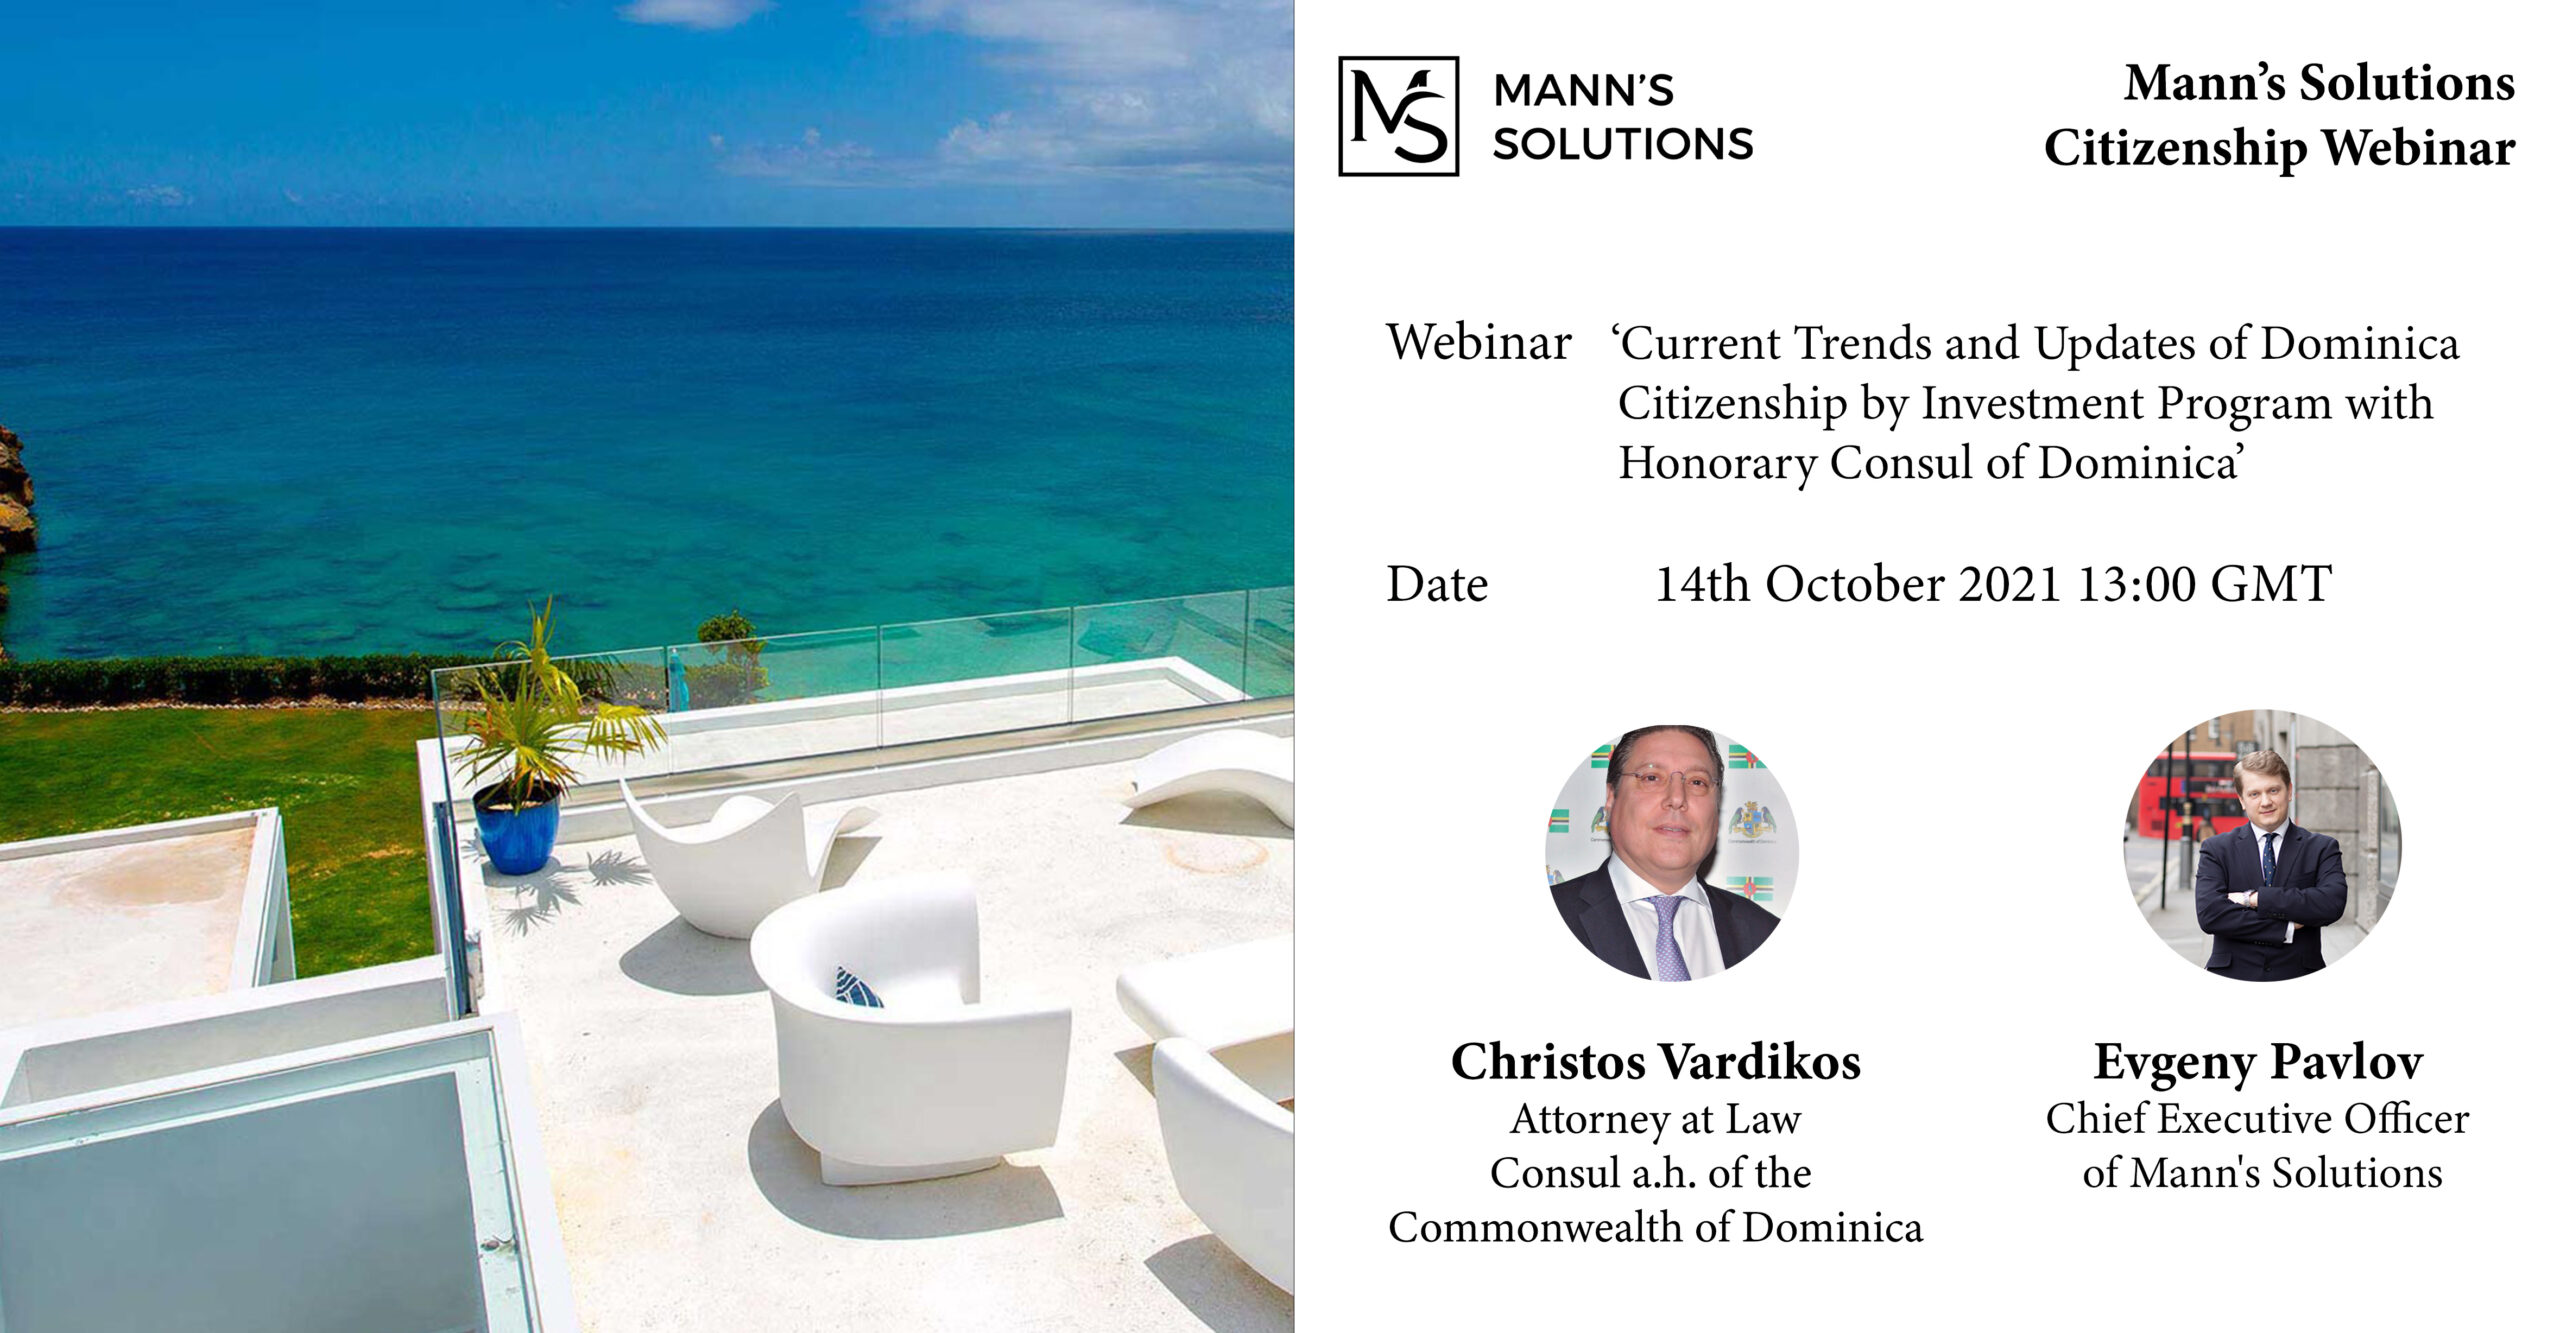 WEBINAR: Current Trends and Updates of Dominica Citizenship with Council a.h. of the Commonwealth of Dominica